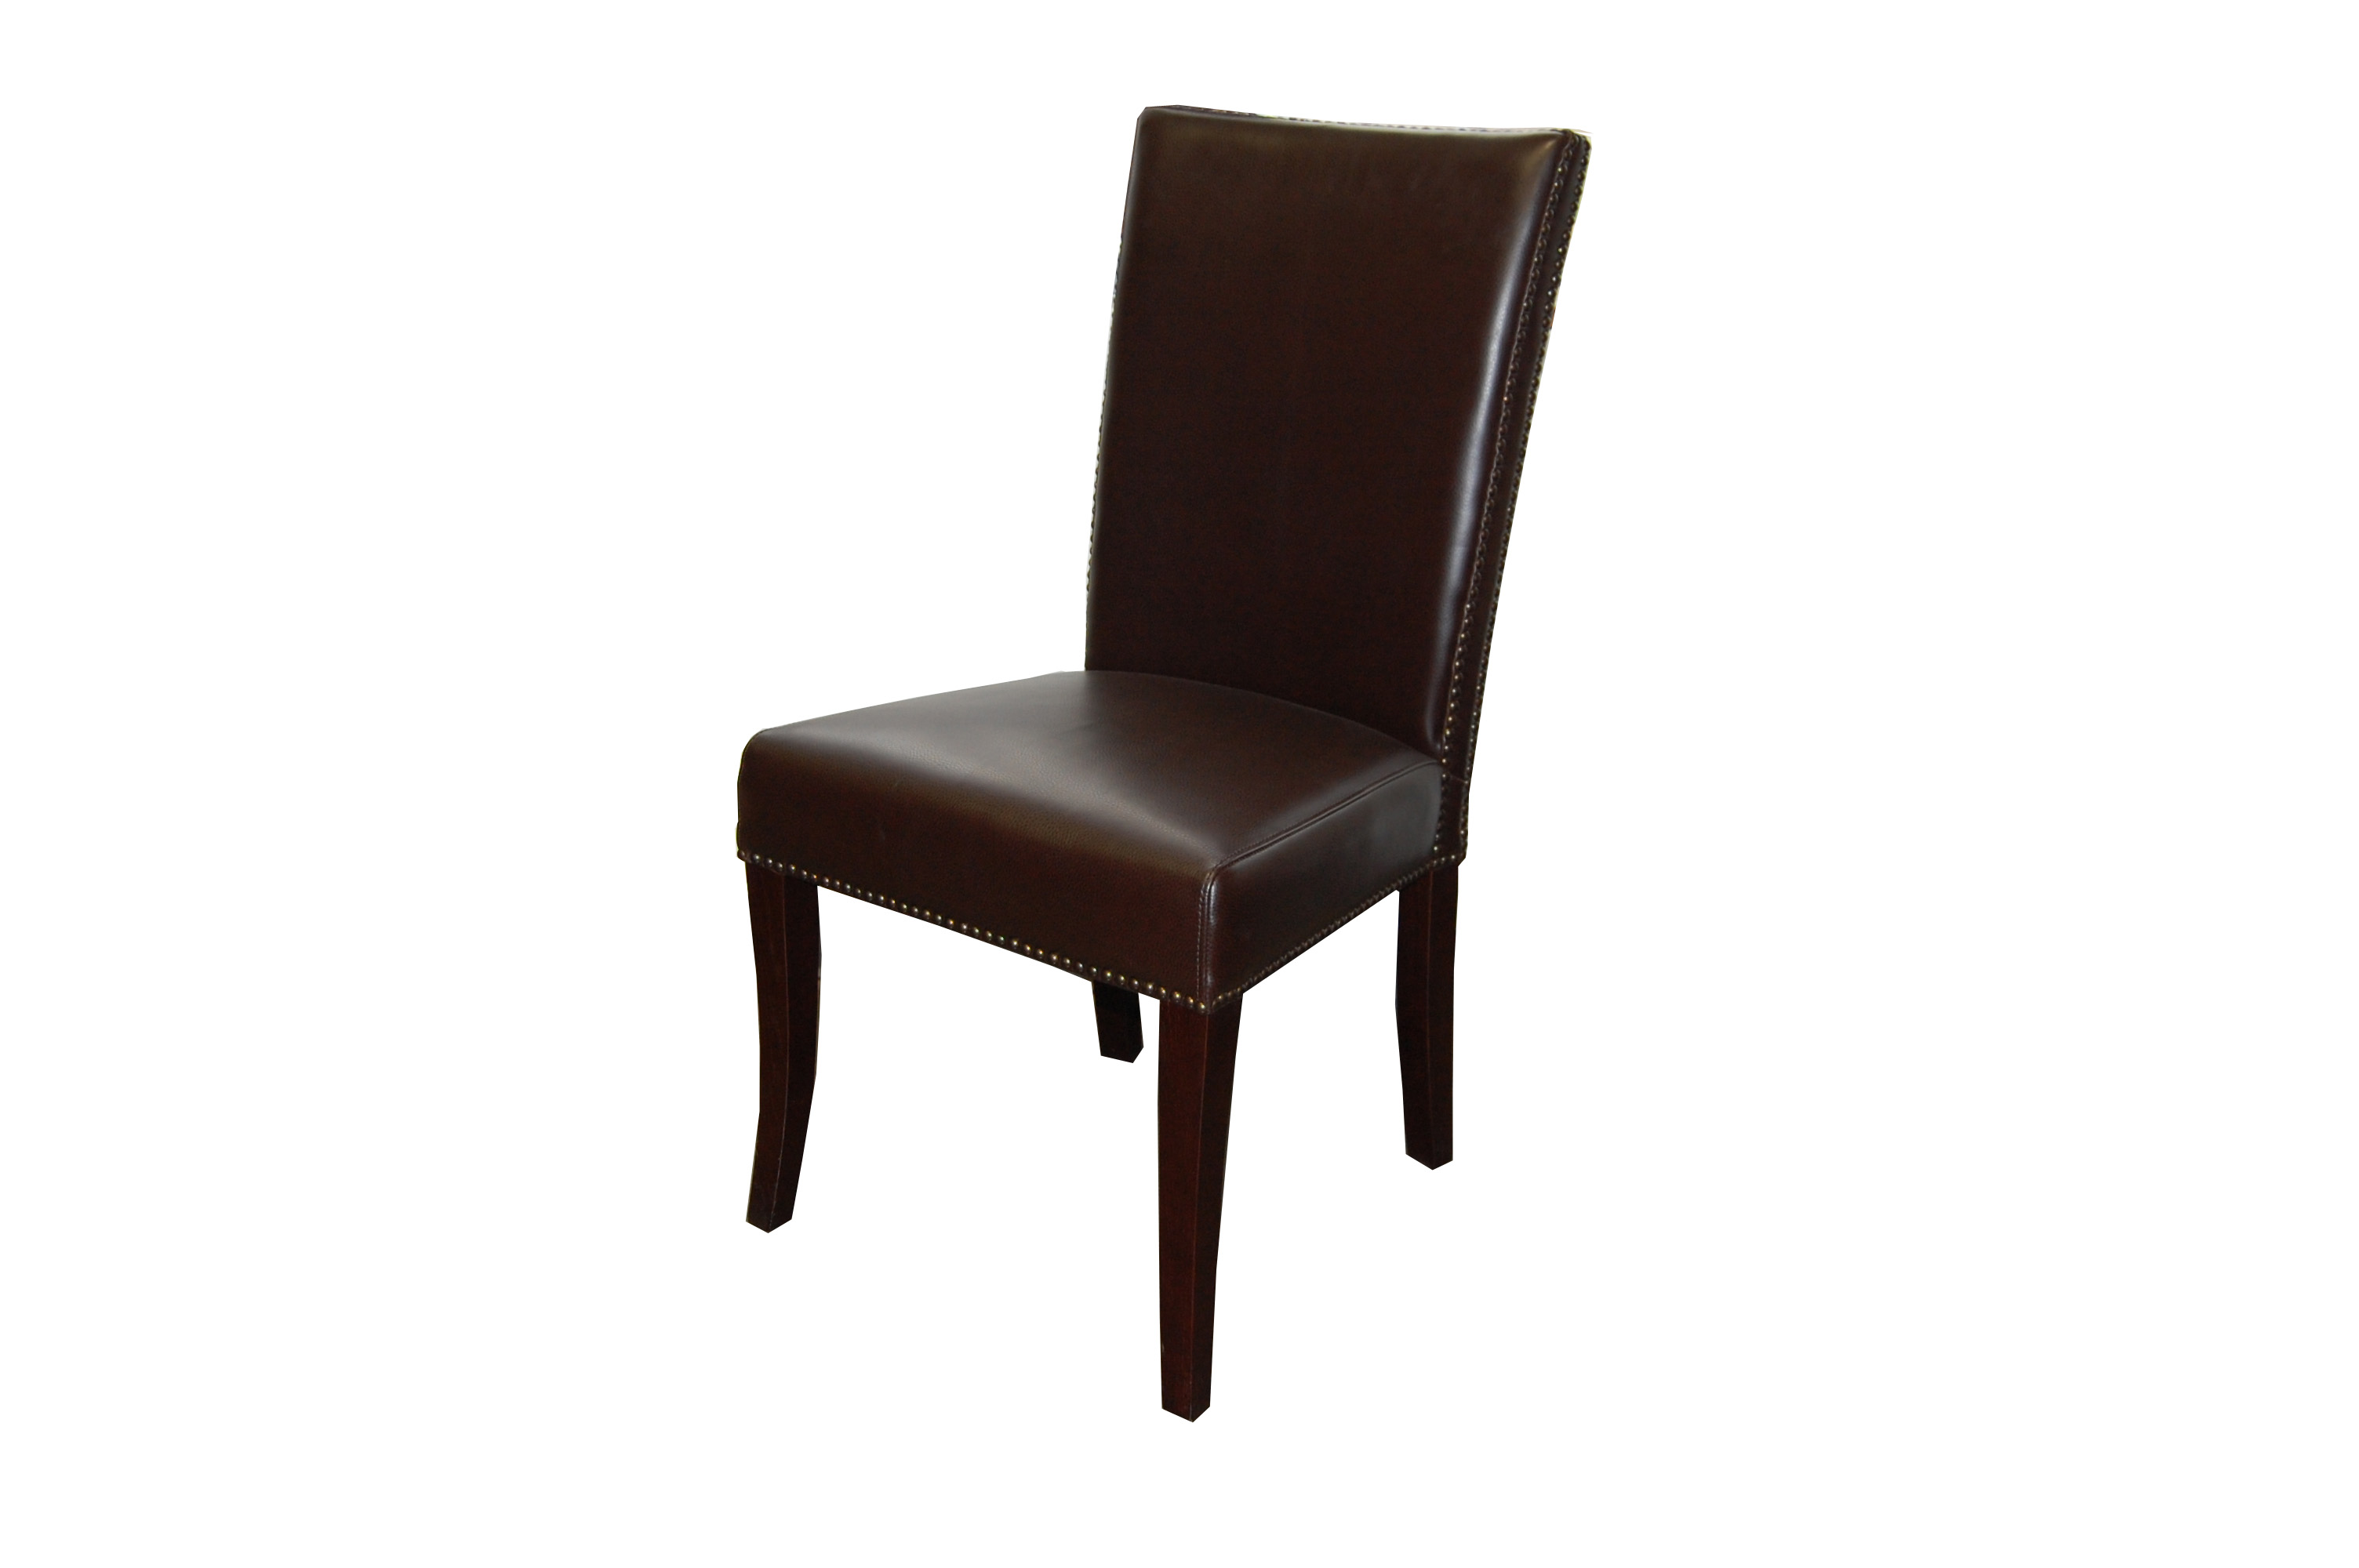 Melissa Dining Chair In PU206 Chocolate Brown Faux Leather